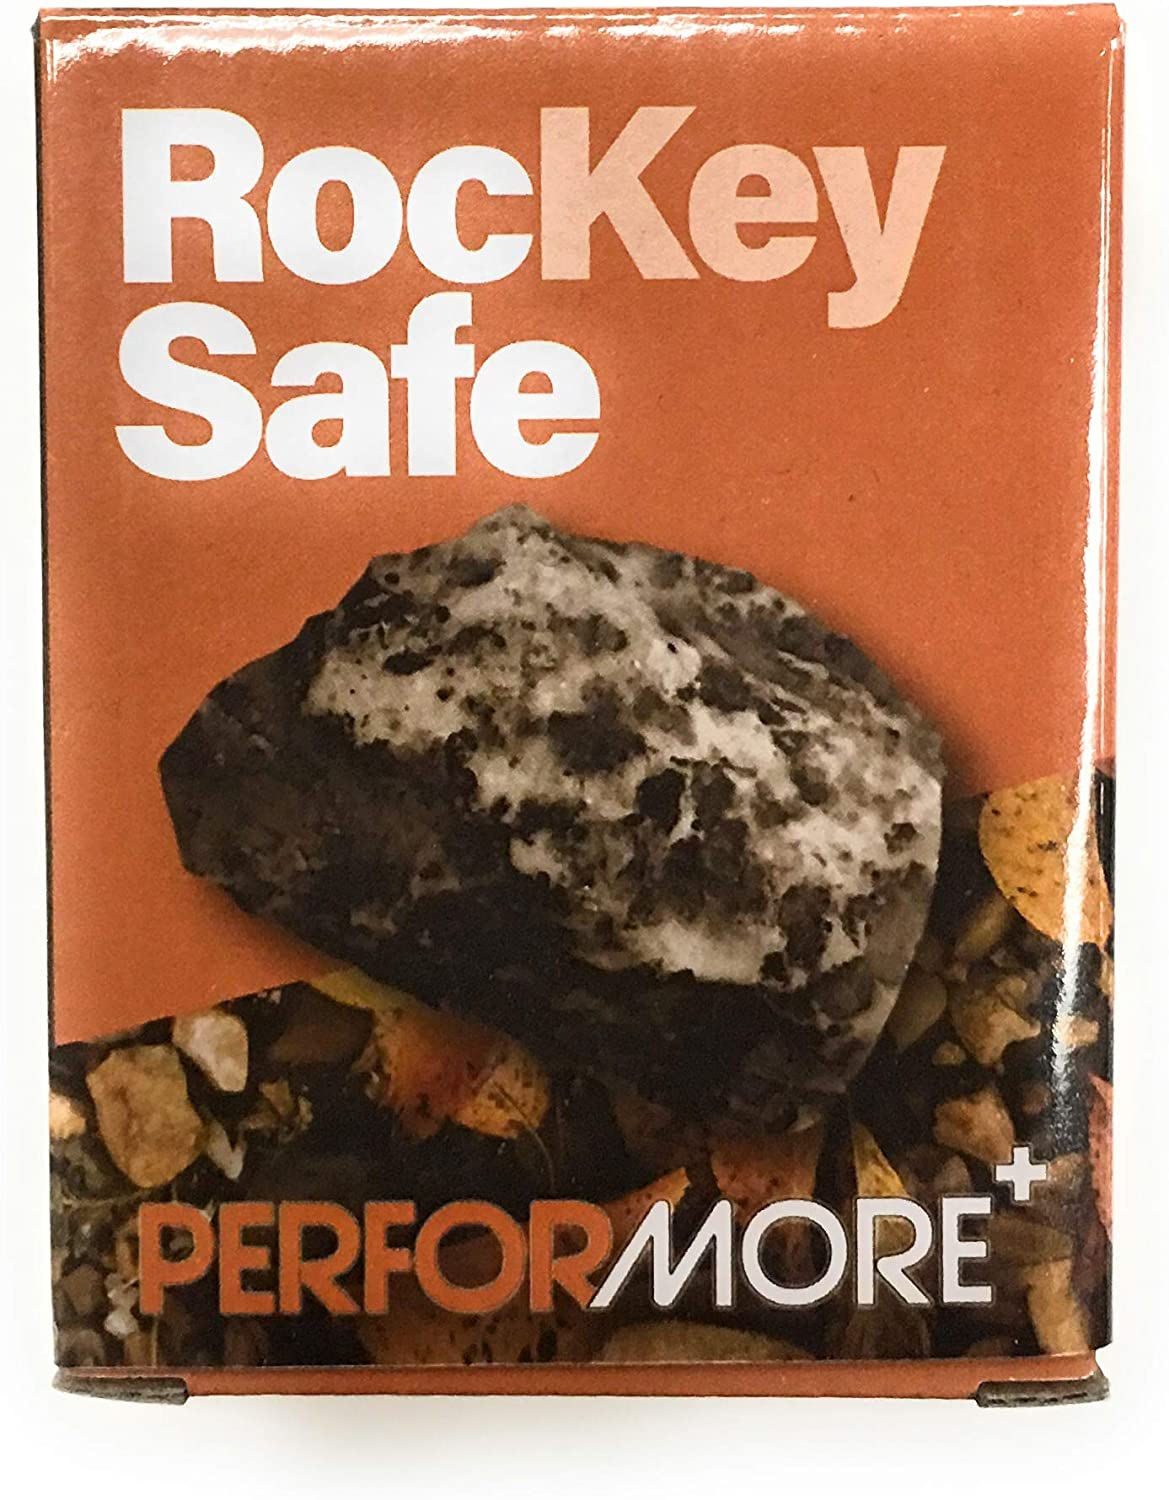 Hide A Key in a Real Looking Rock/Stone, Holds Standard Sized Spare Keys by Rockey Safe, Fits in with your Landscaping and Yard, Resistant to Outdoor Elements